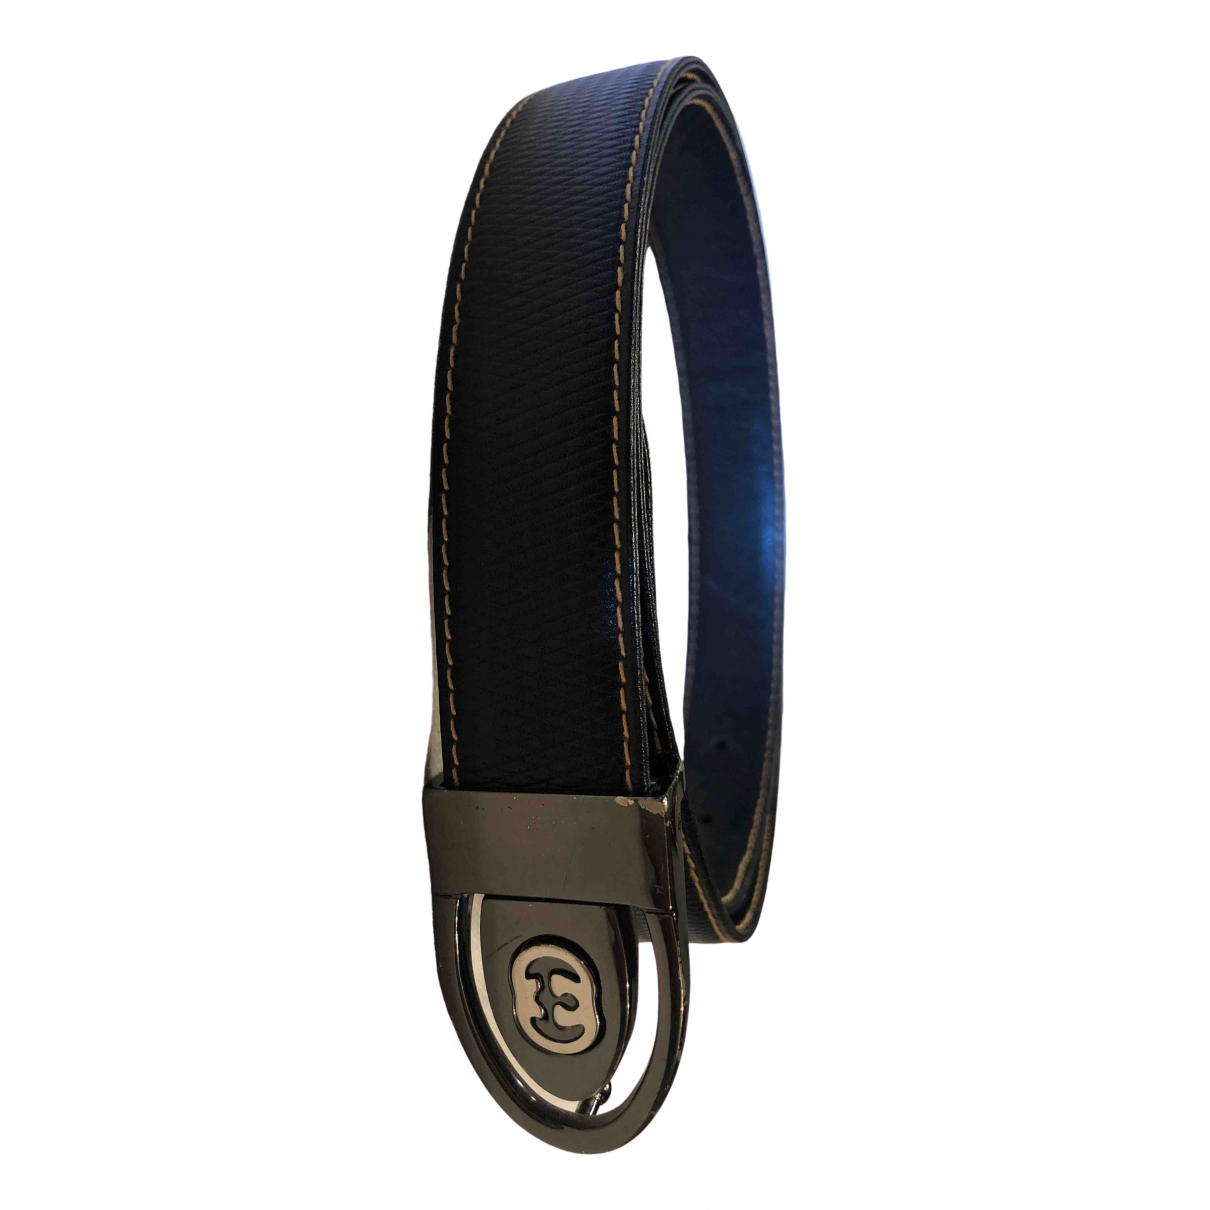 Gucci \N Black Leather belt for Women 85 cm